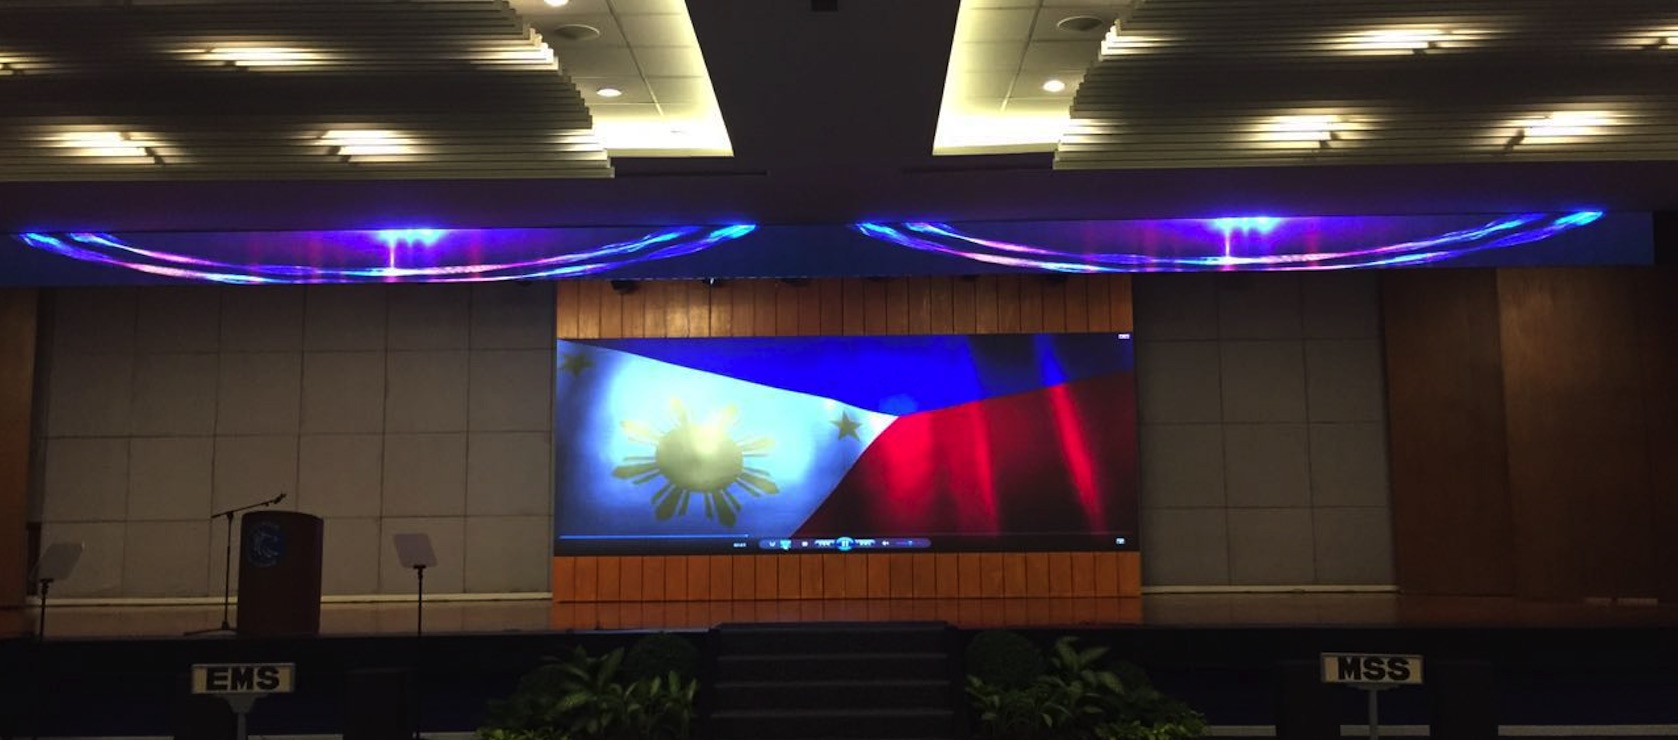 P3.91 LED display